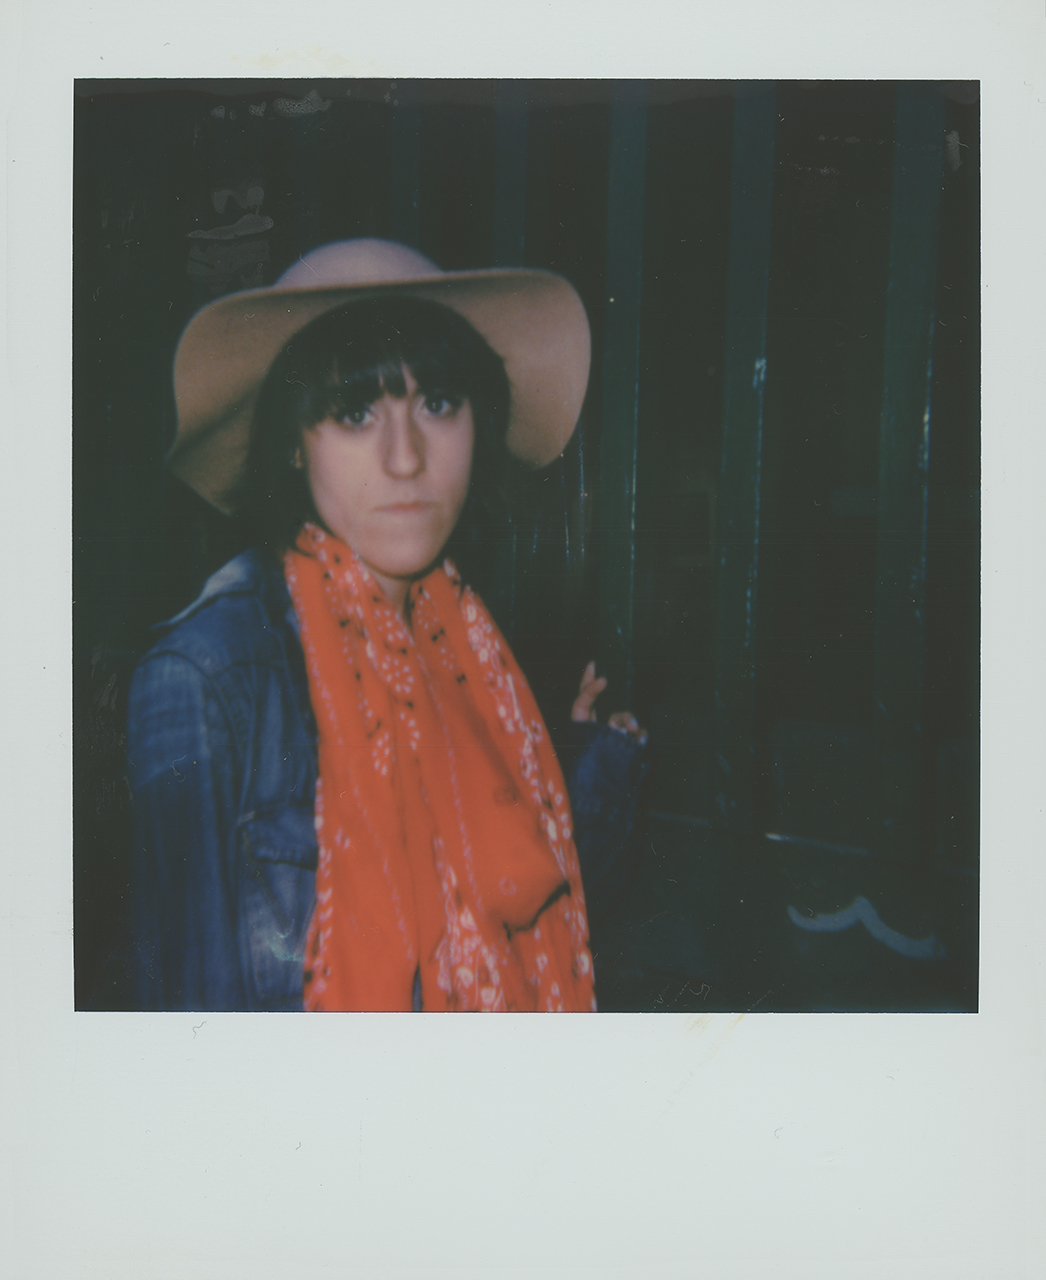 Nicasia on Polaroid 600 film